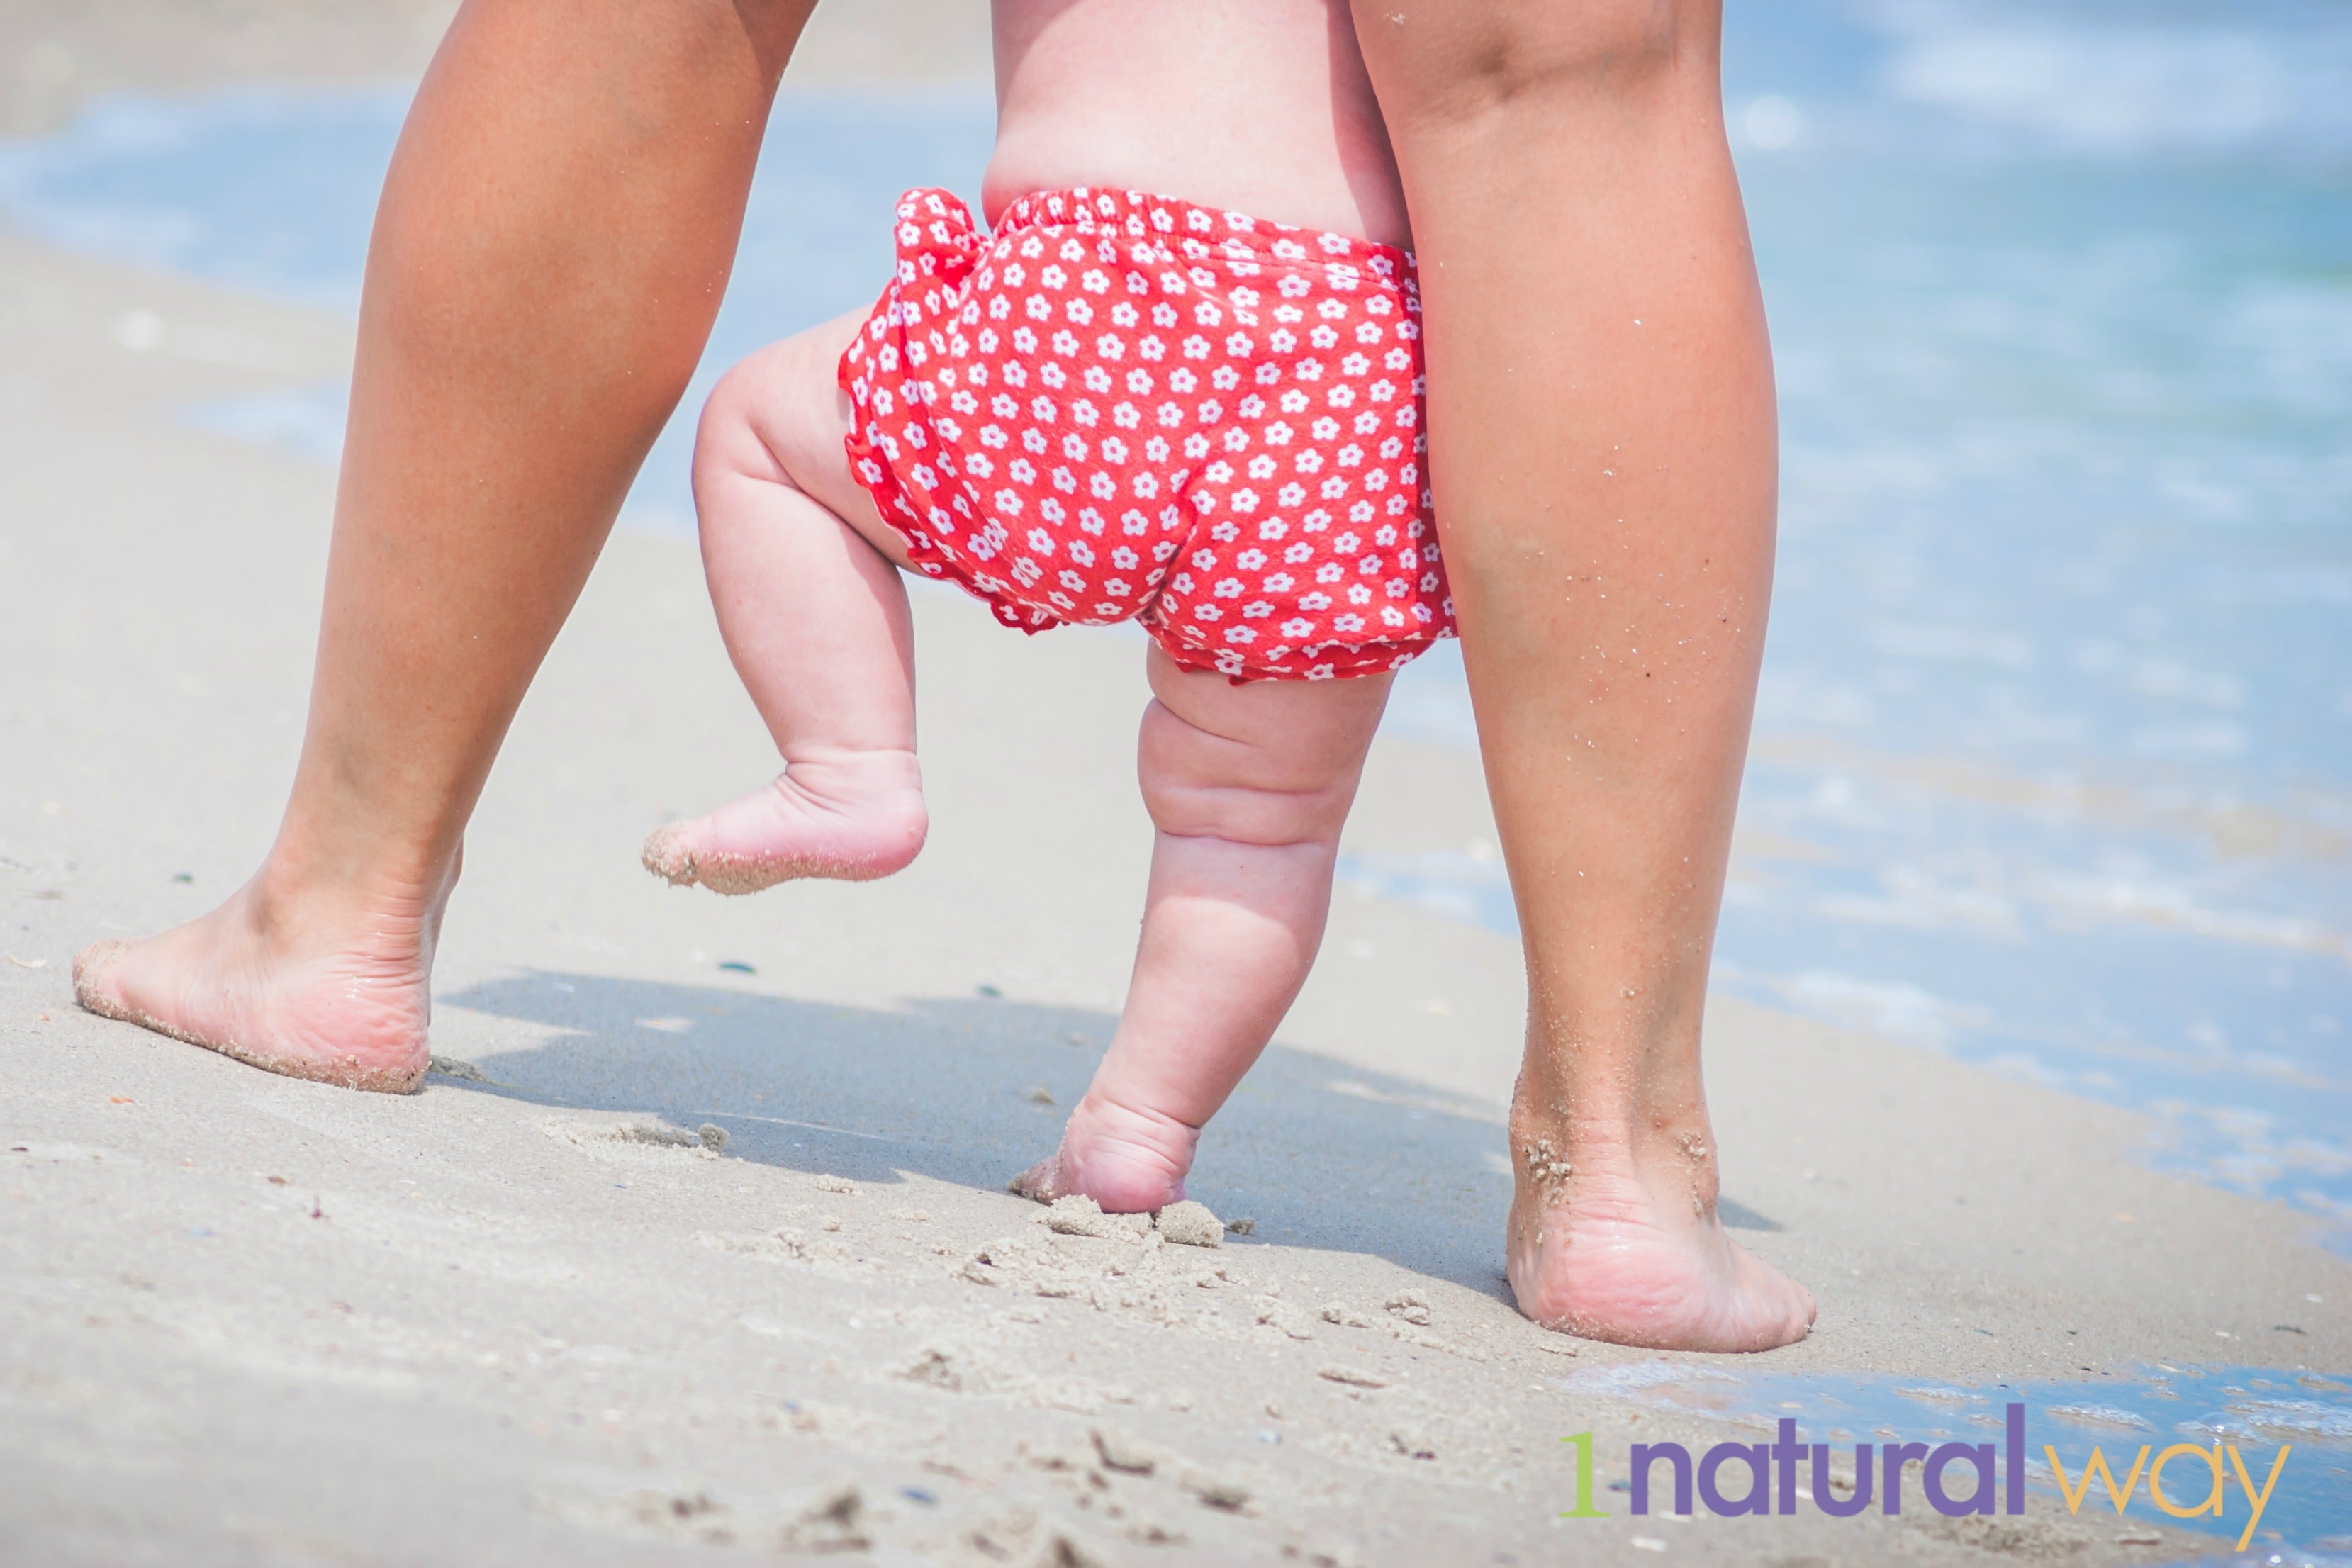 1 Natural Way - Baby feet on the beach